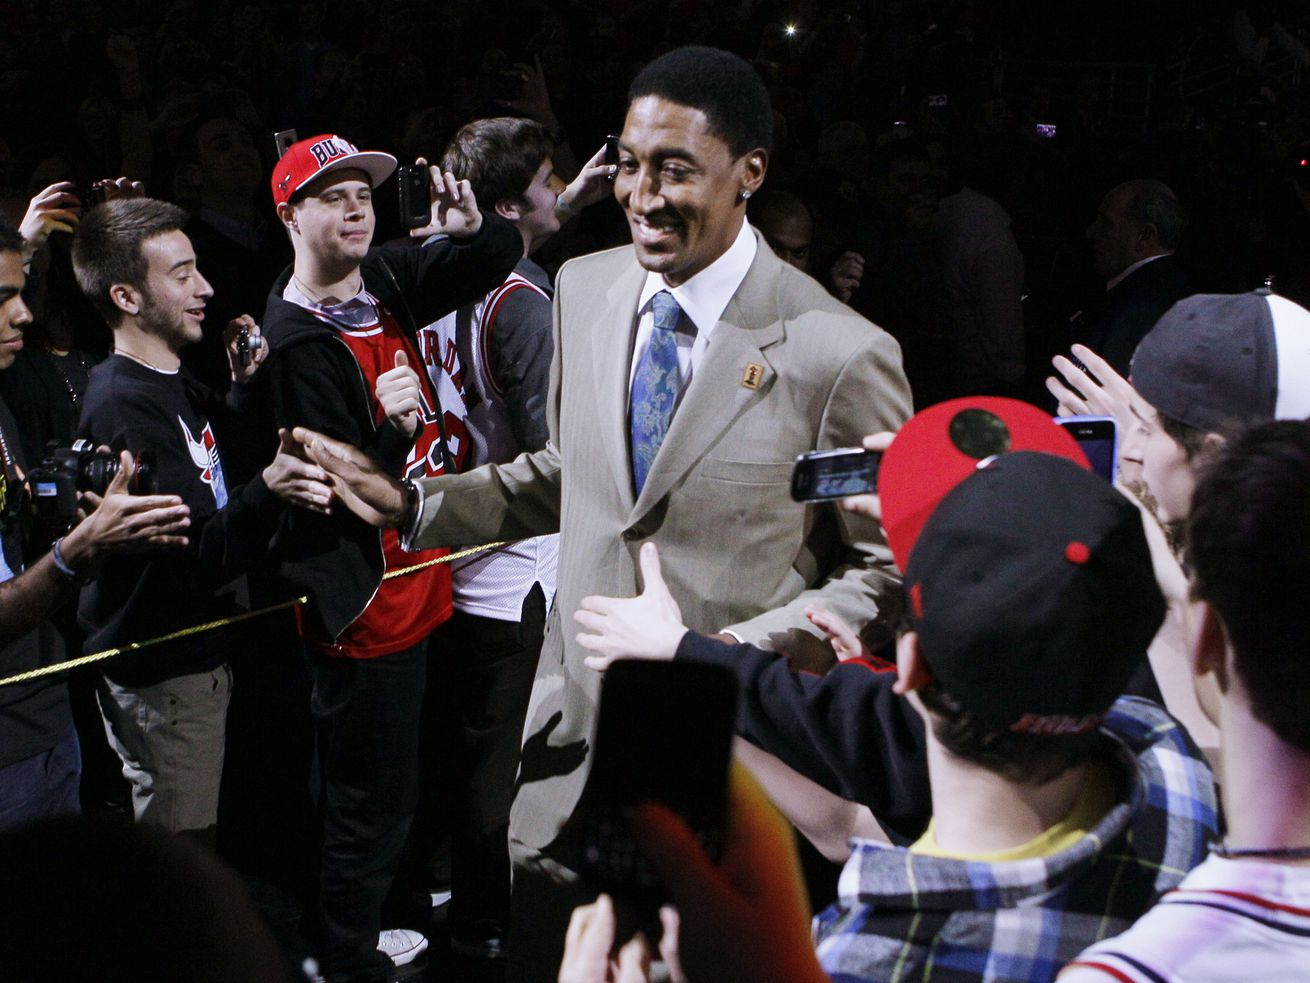 Former Bulls player Scottie Pippen's new autobiography will be released in November.